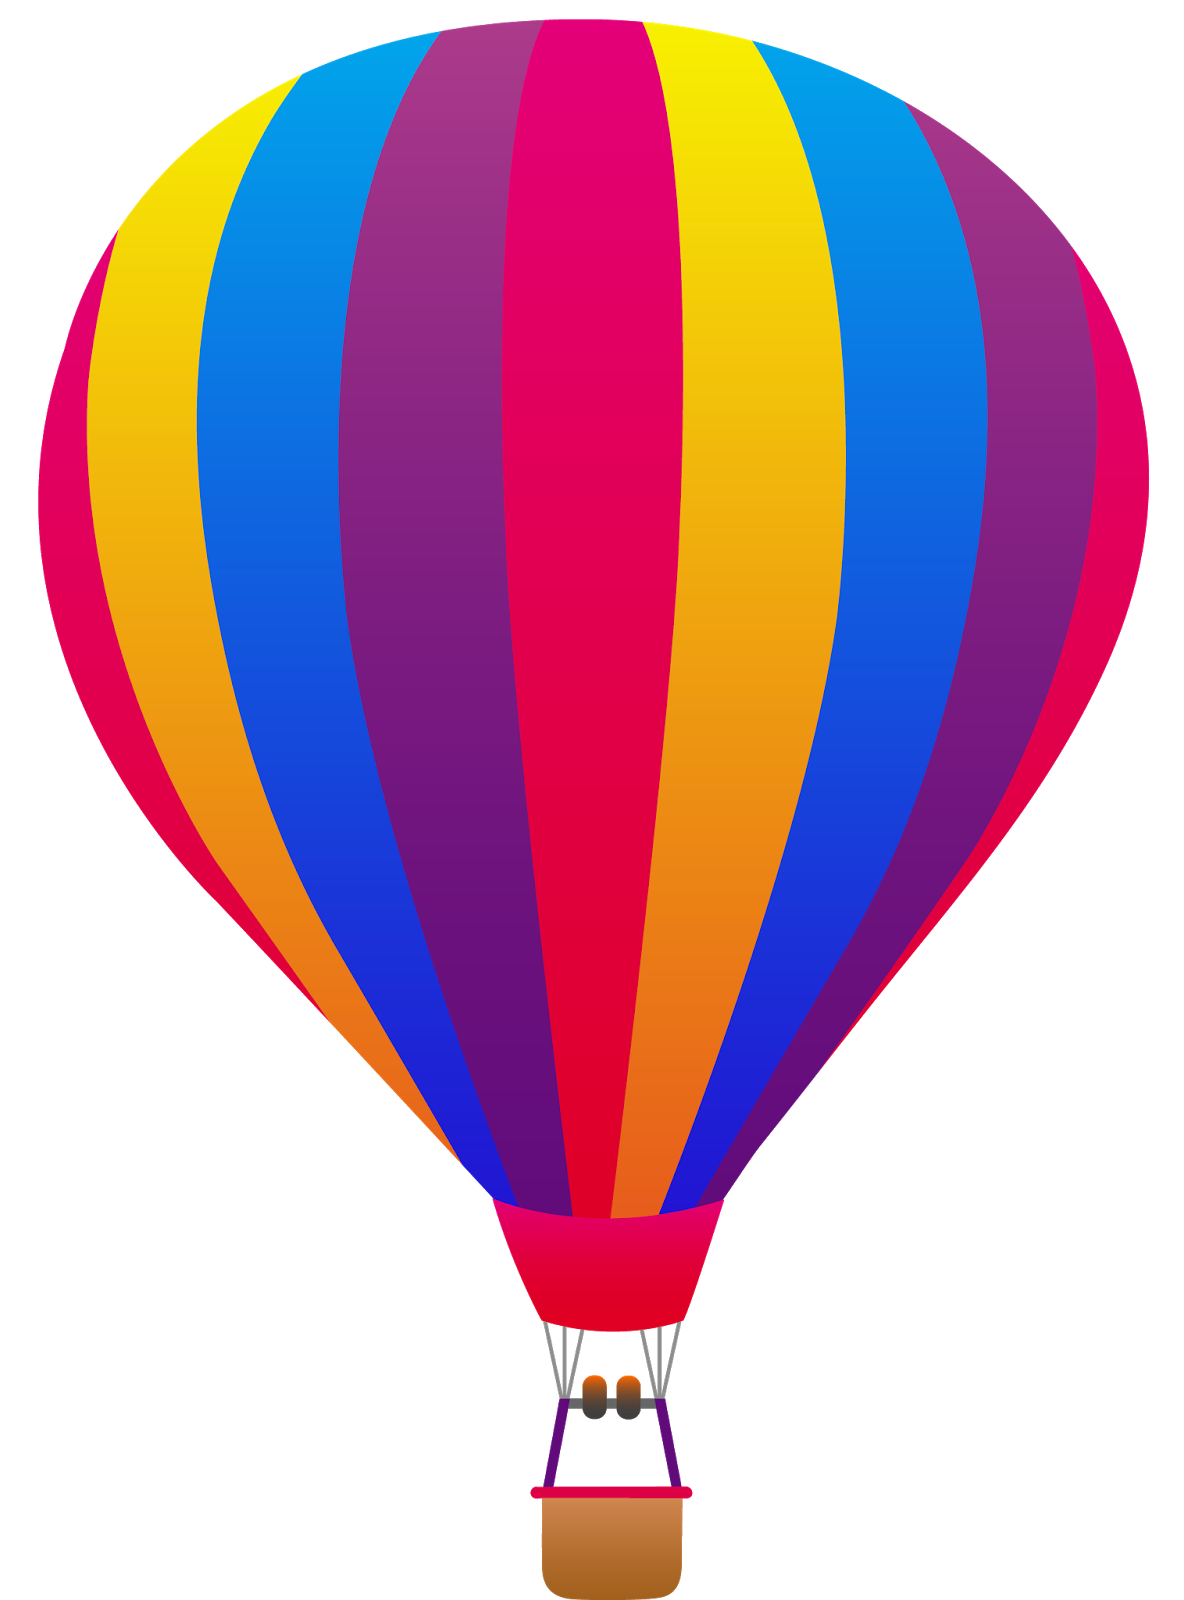 Hot air balloon vector png. That i based off